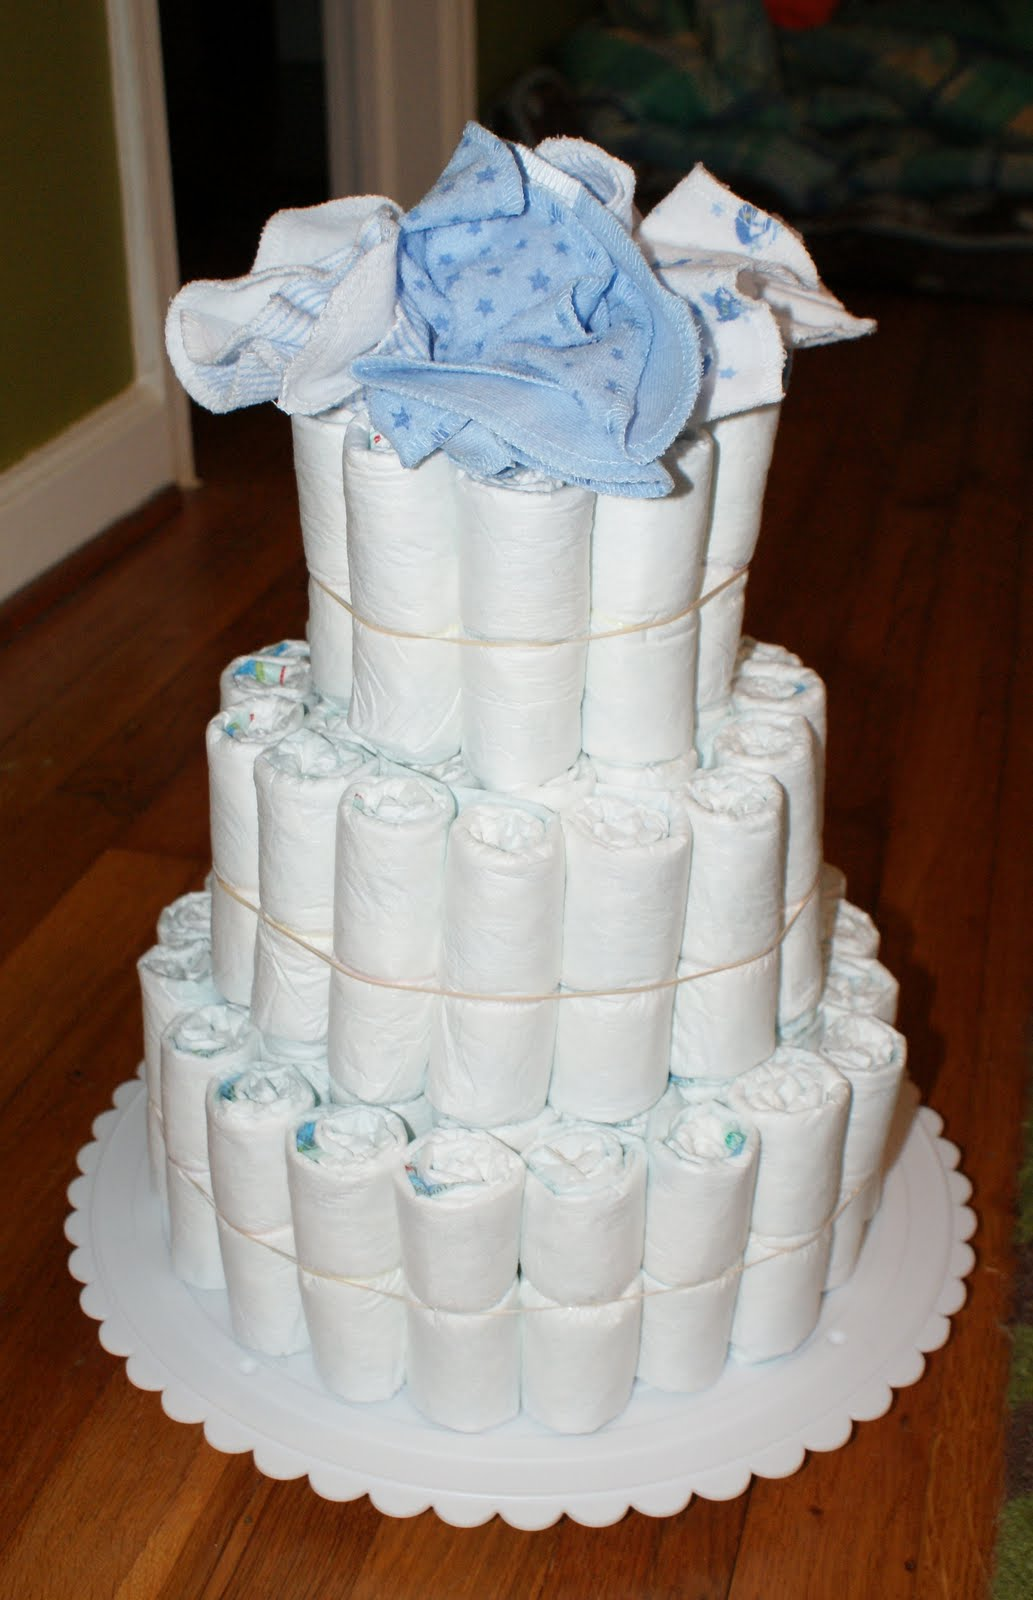 Cake Shaped Like a Diaper http://www.householdhabits.com/2012/07/diaper-cakes.html